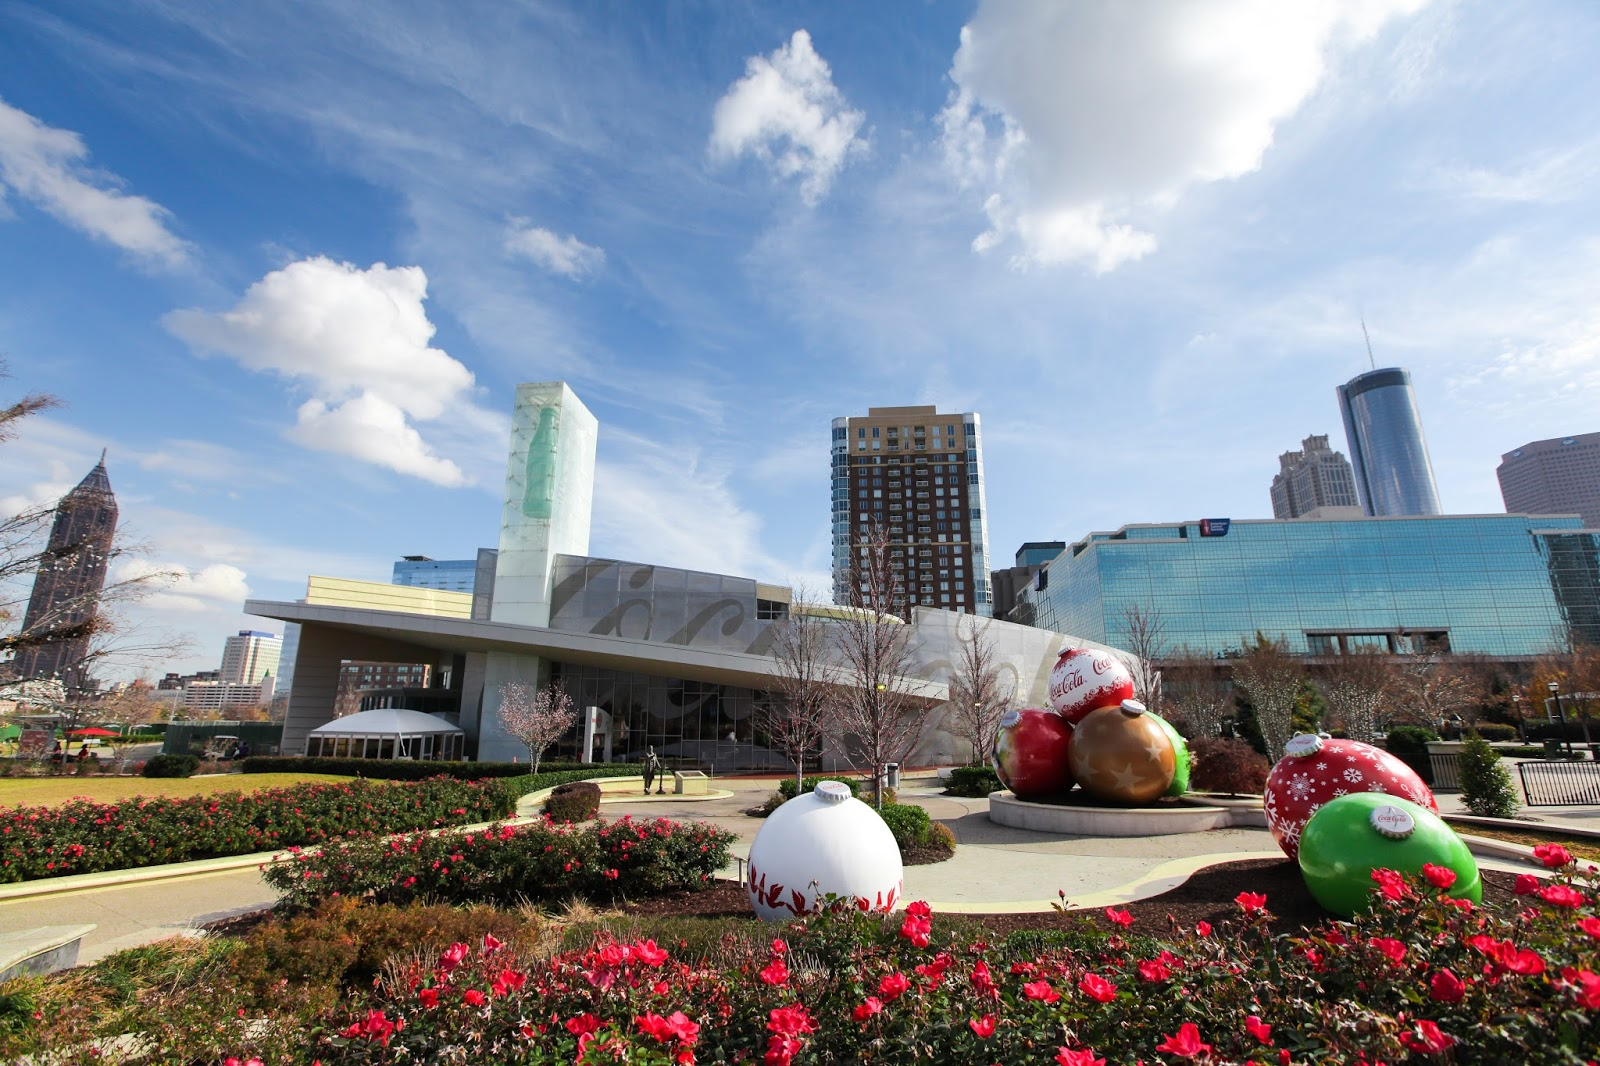 BIG NEWS: First-Ever Free Admission Day at World of Coca-Cola this Sunday